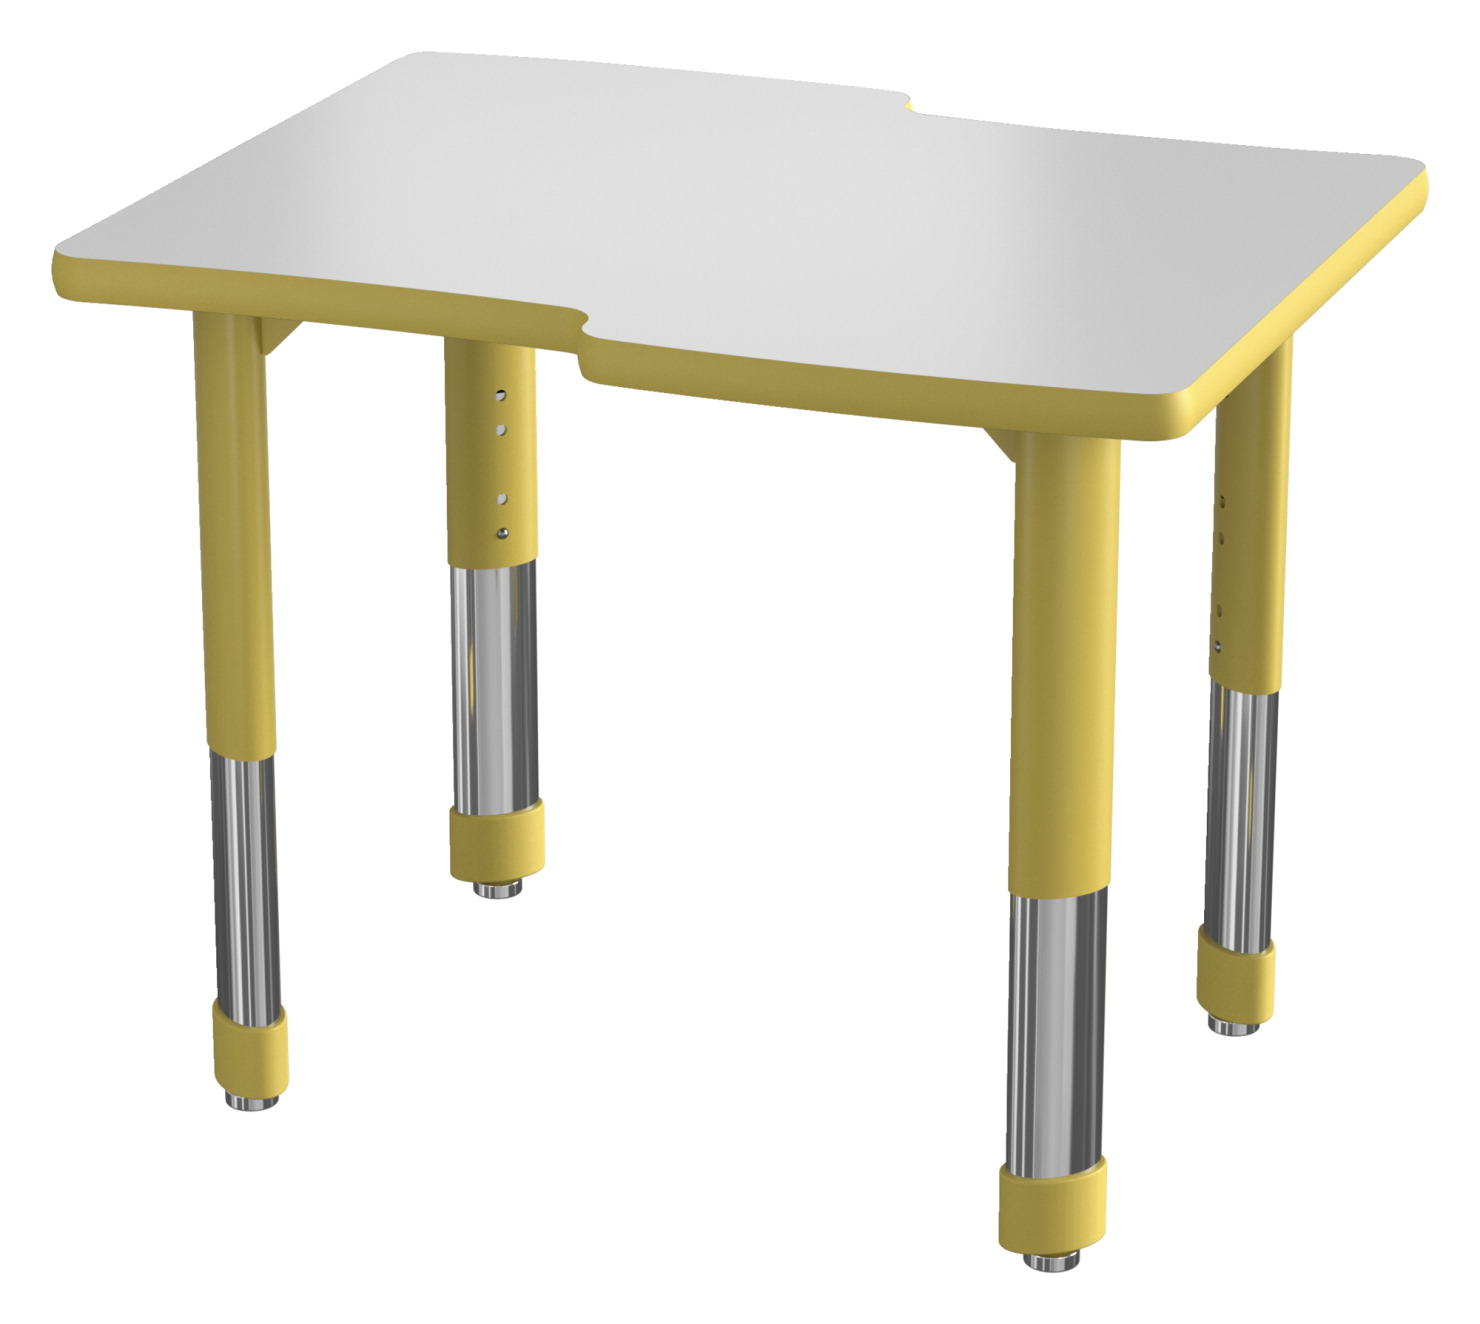 Classroom Select NeoShape Markerboard Shaped Desk, T-Mold, Waverly, 30 x 24 Inches, Various Options